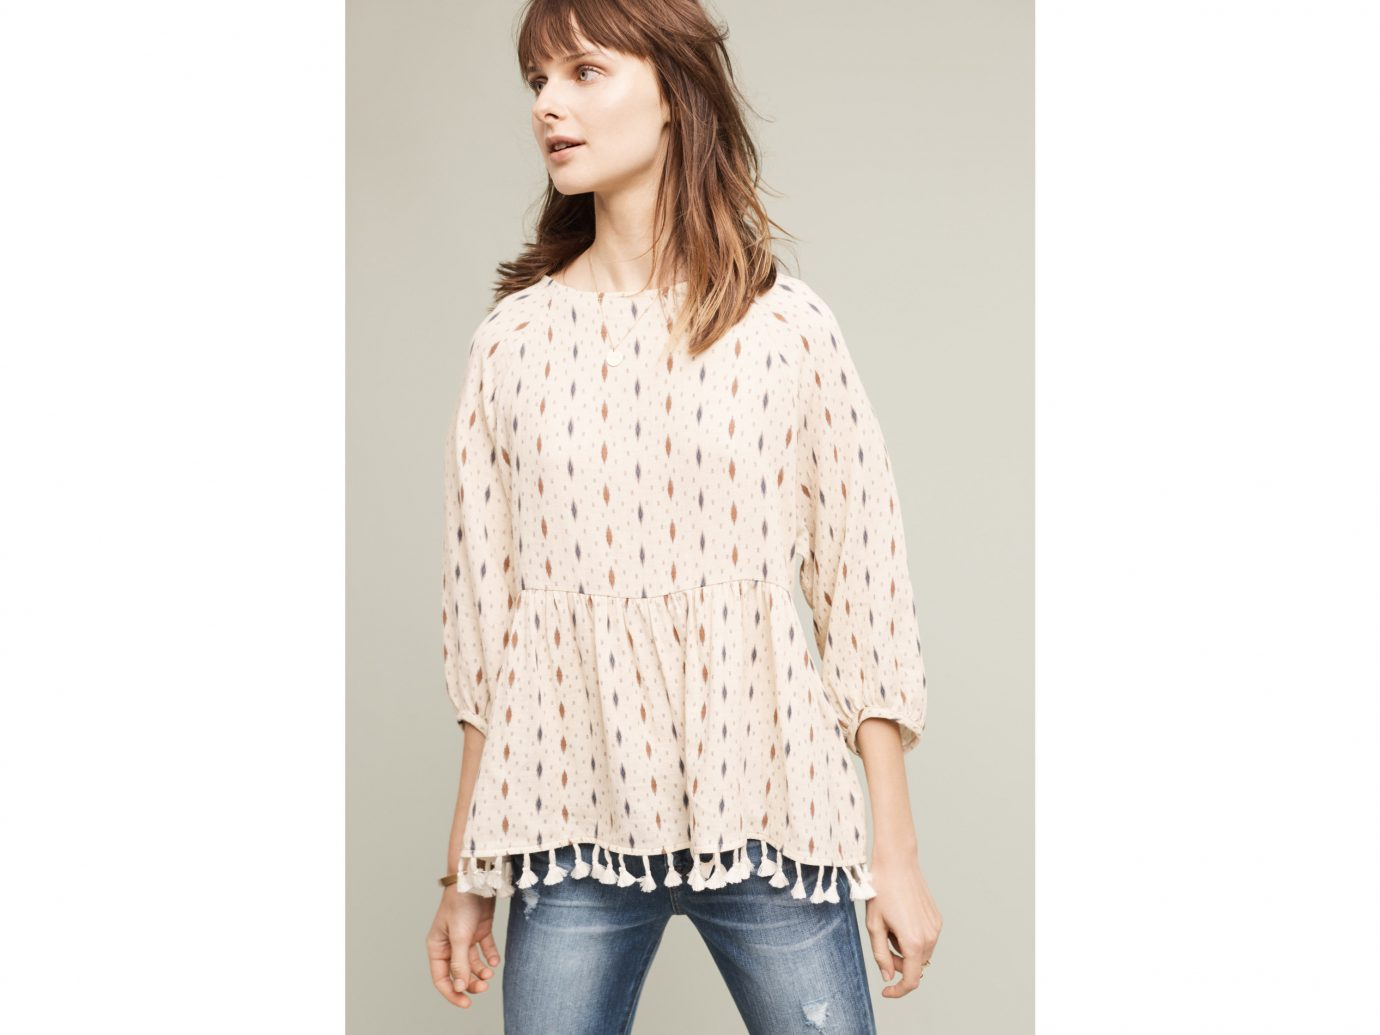 Style + Design person clothing wall standing sleeve indoor outerwear blouse pattern shirt Design posing neck textile collar beige polka dot photo shoot sweater trouser